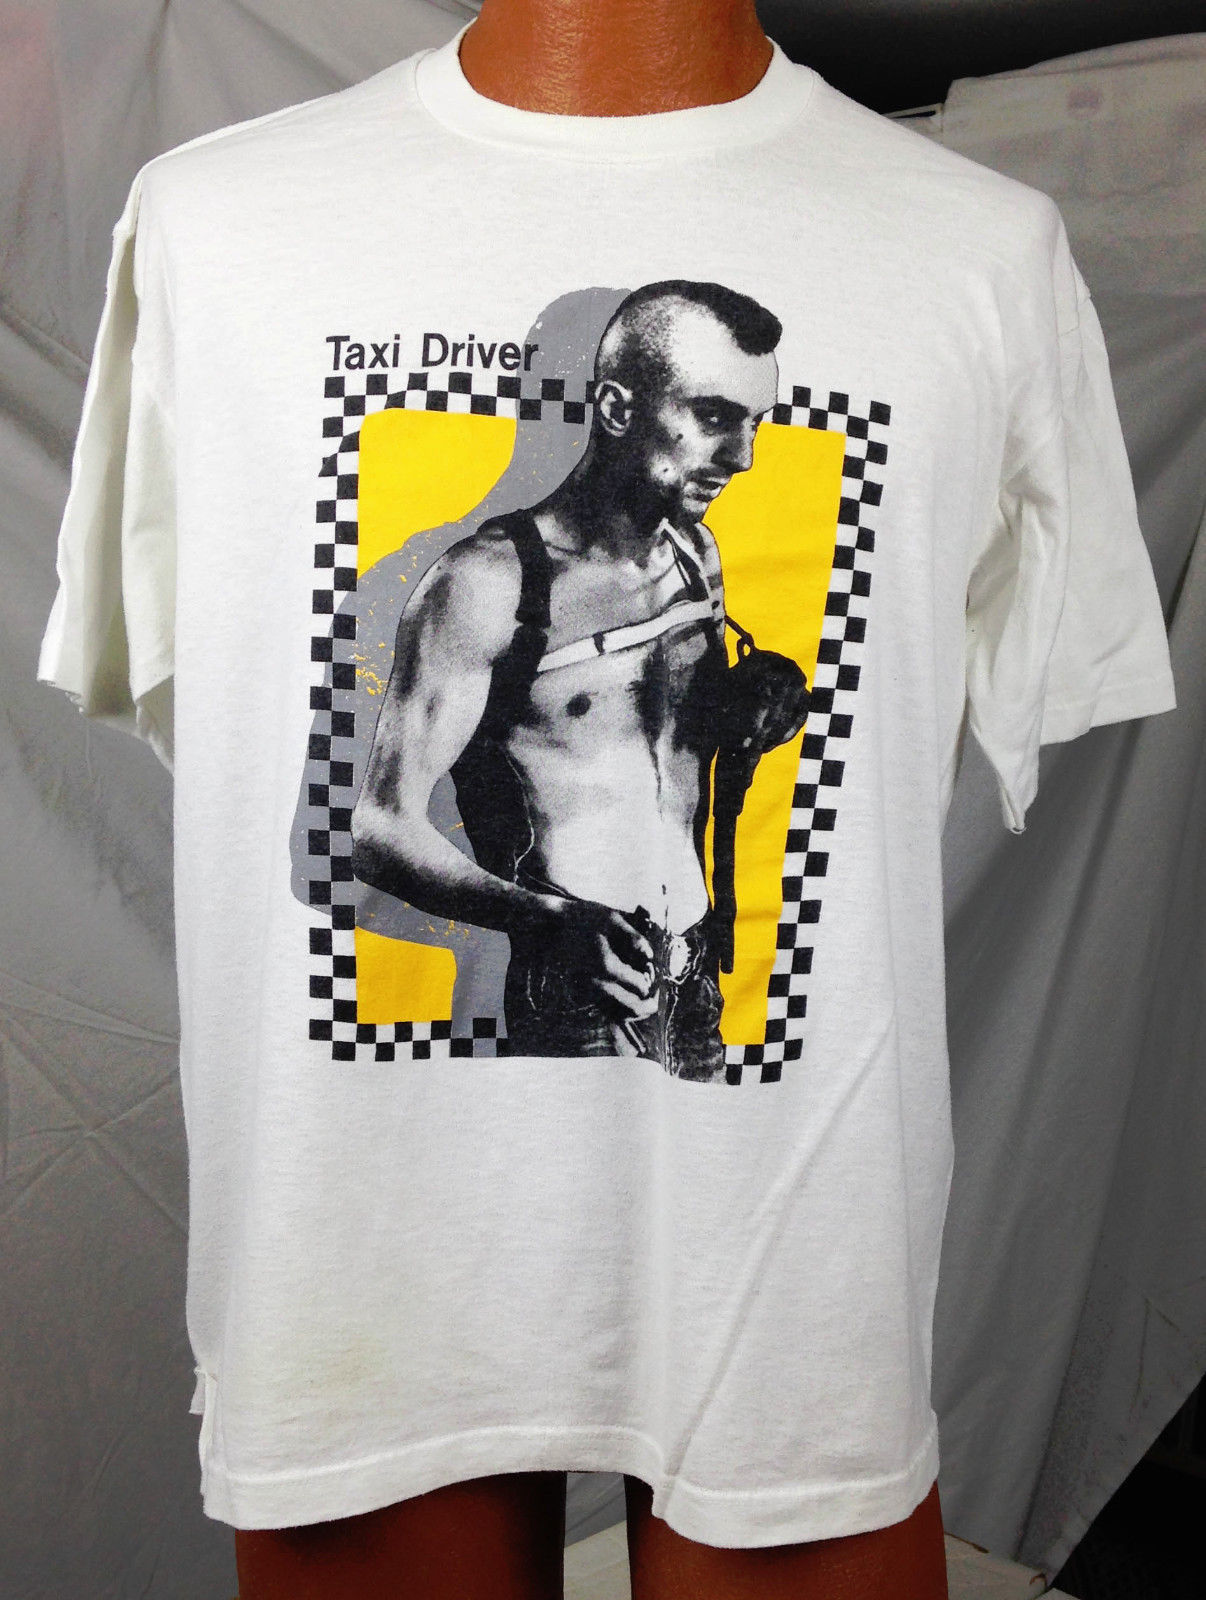 Hot Rare Vintage Taxi Driver - Late '80s PUNK Robert DeNiro Best T-shirt Reprint Hot 2019 Summer Men'S T Shirt Fashion image